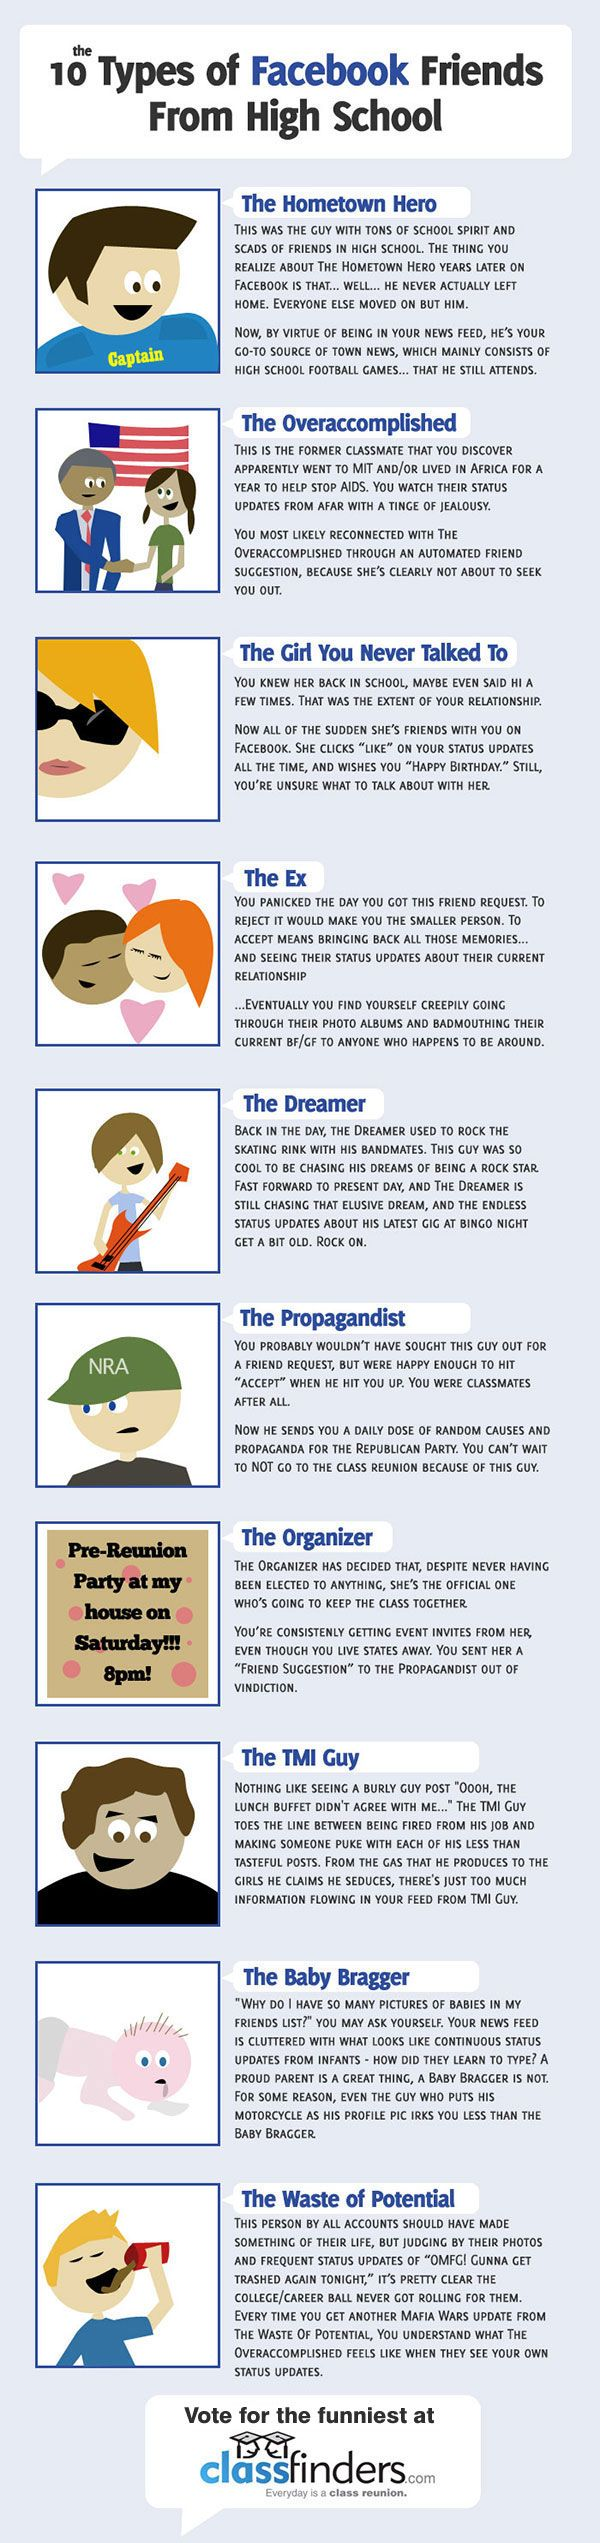 Infographic: The 10 types of Facebook friends